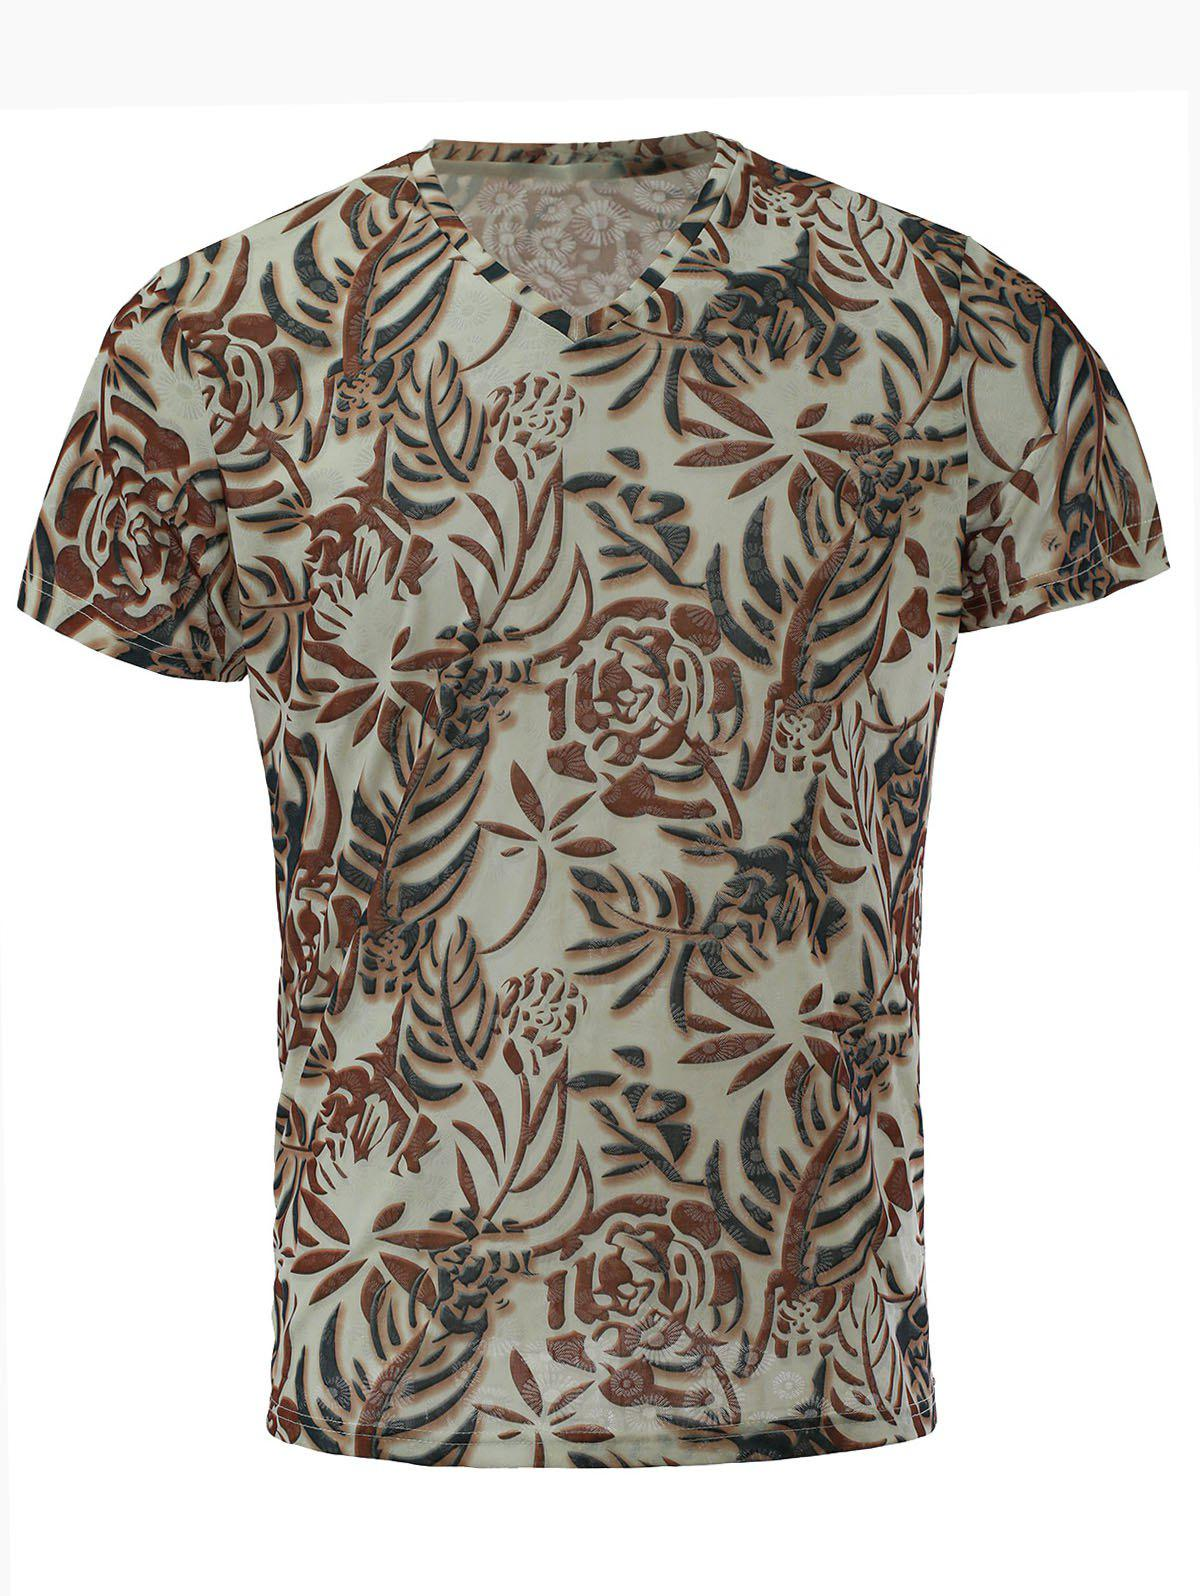 Men's Stylish Short Sleeves V-Neck Plant Printed T-Shirt - COLORMIX M